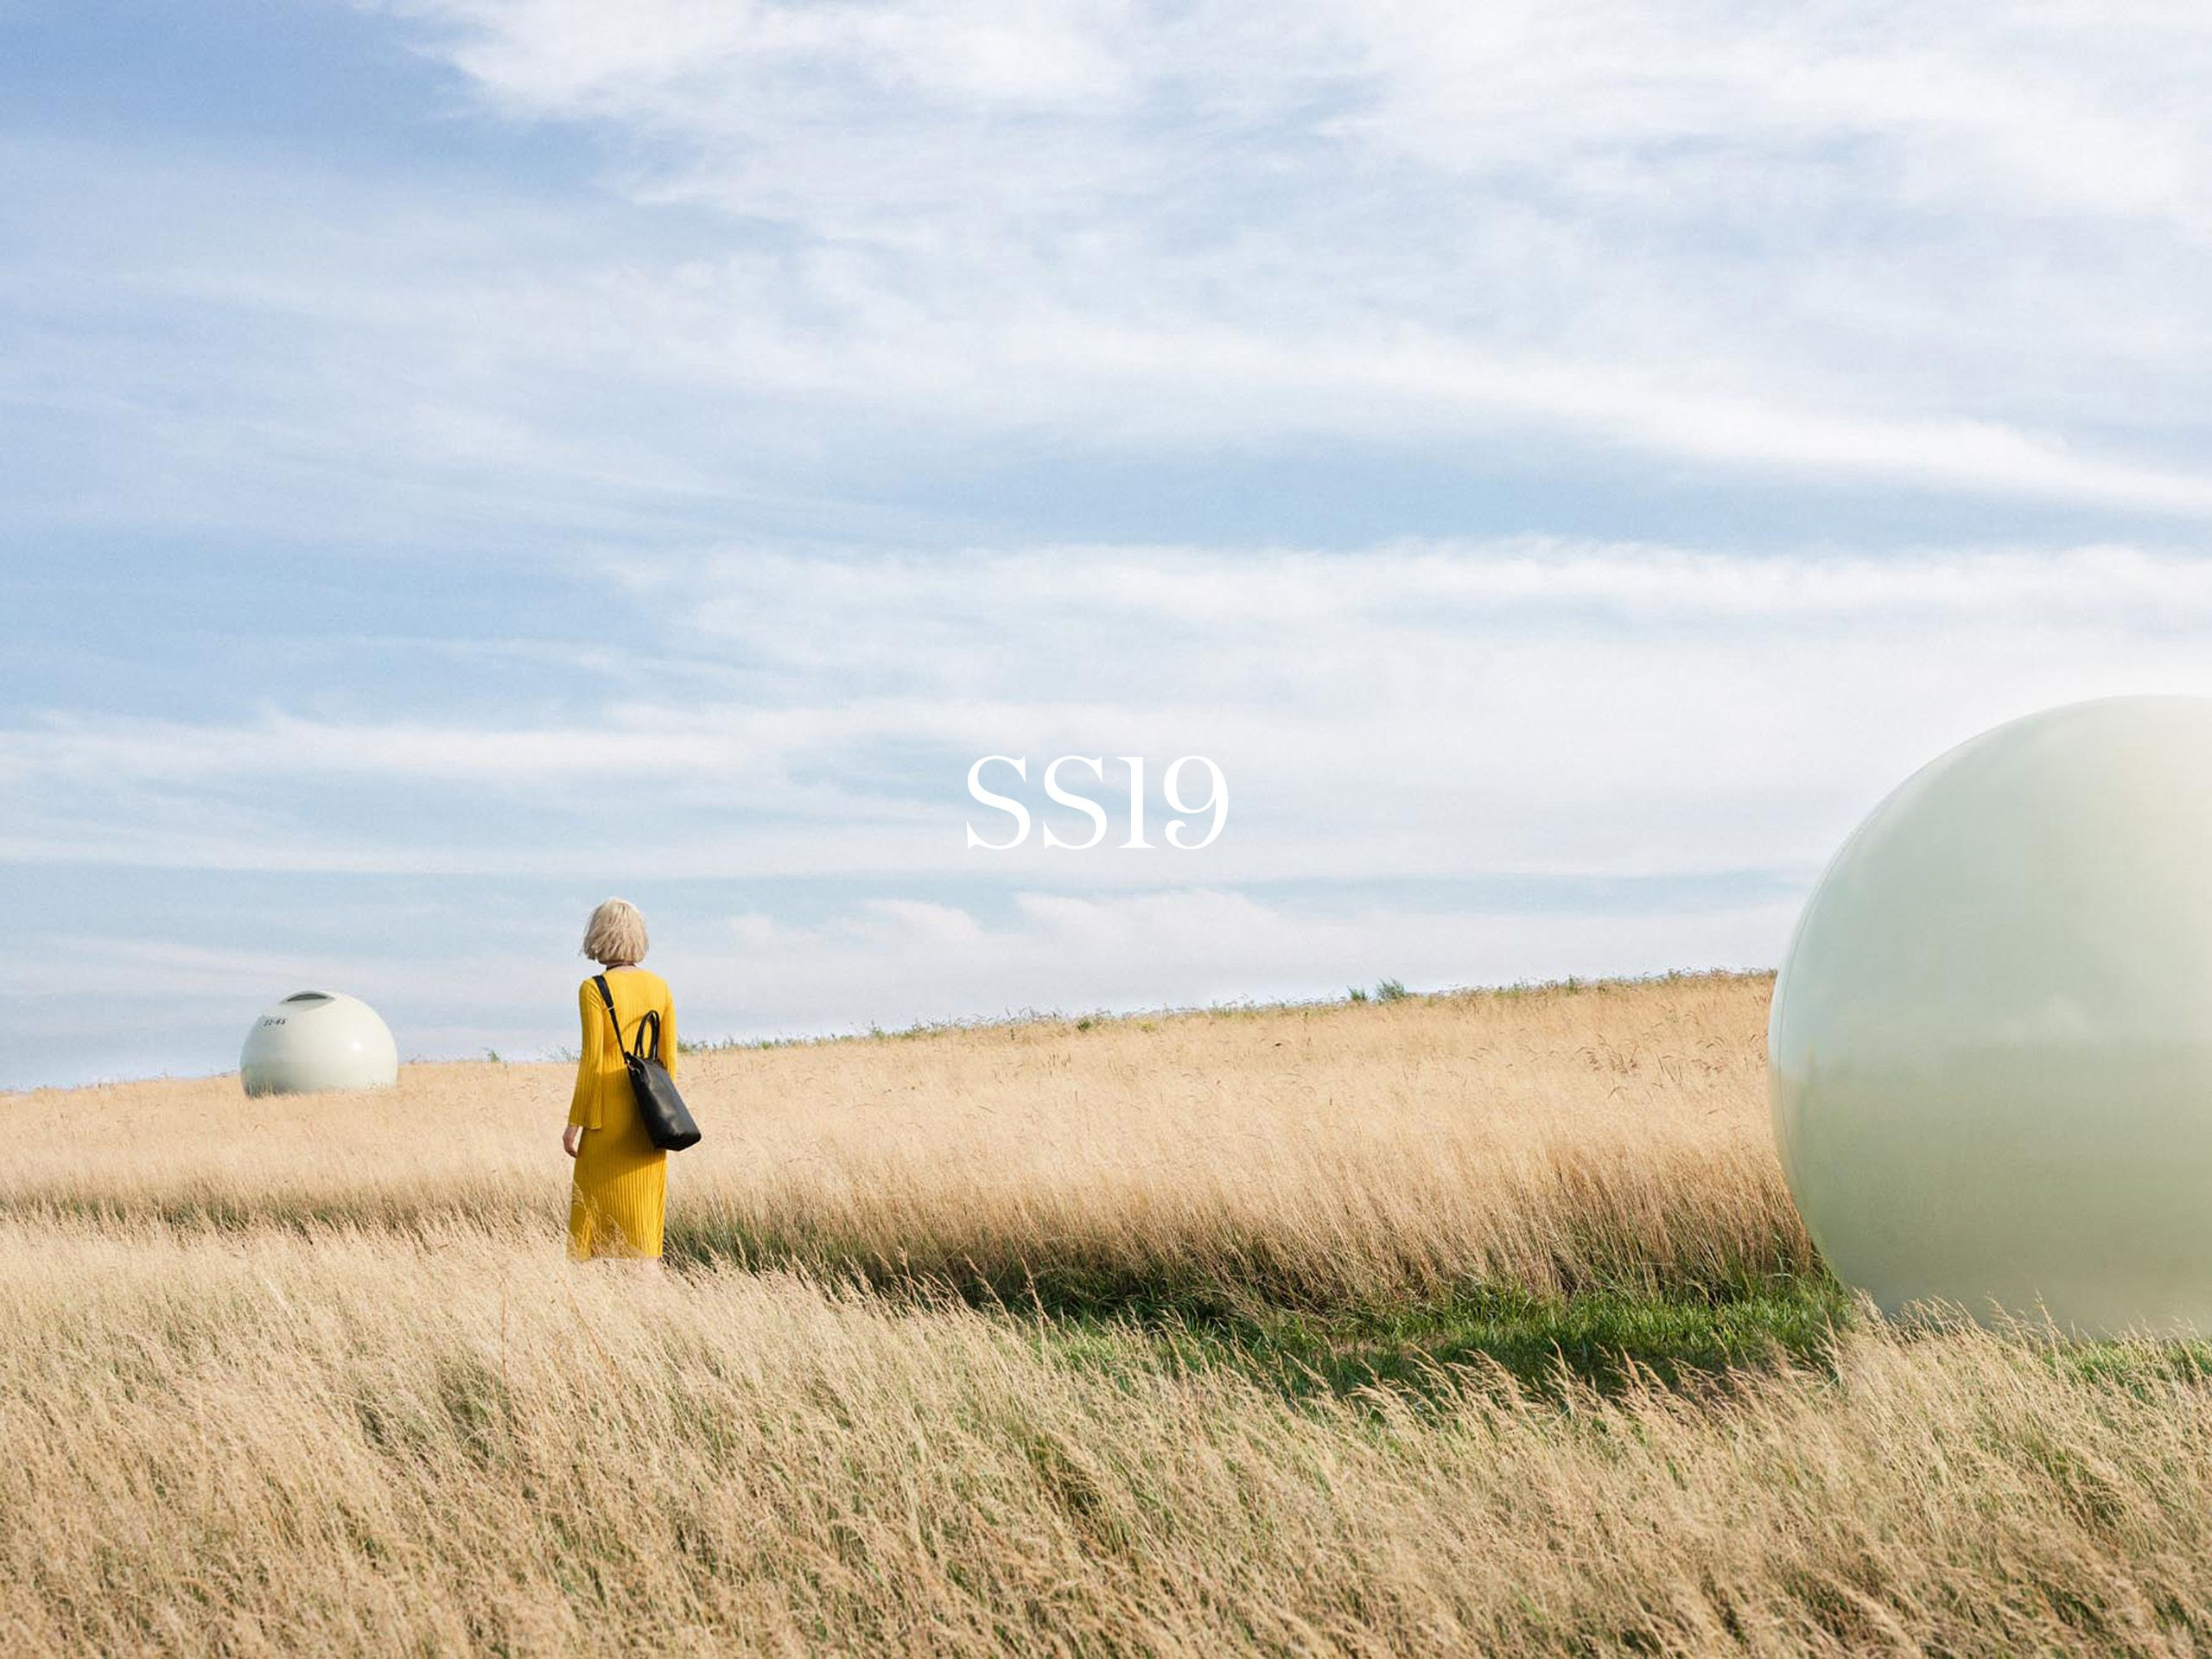 asian woman model walking in field wearing yellow dress photographed by Alexi Hobbs for Want Les Essentiels Spring Summer 2019 collection